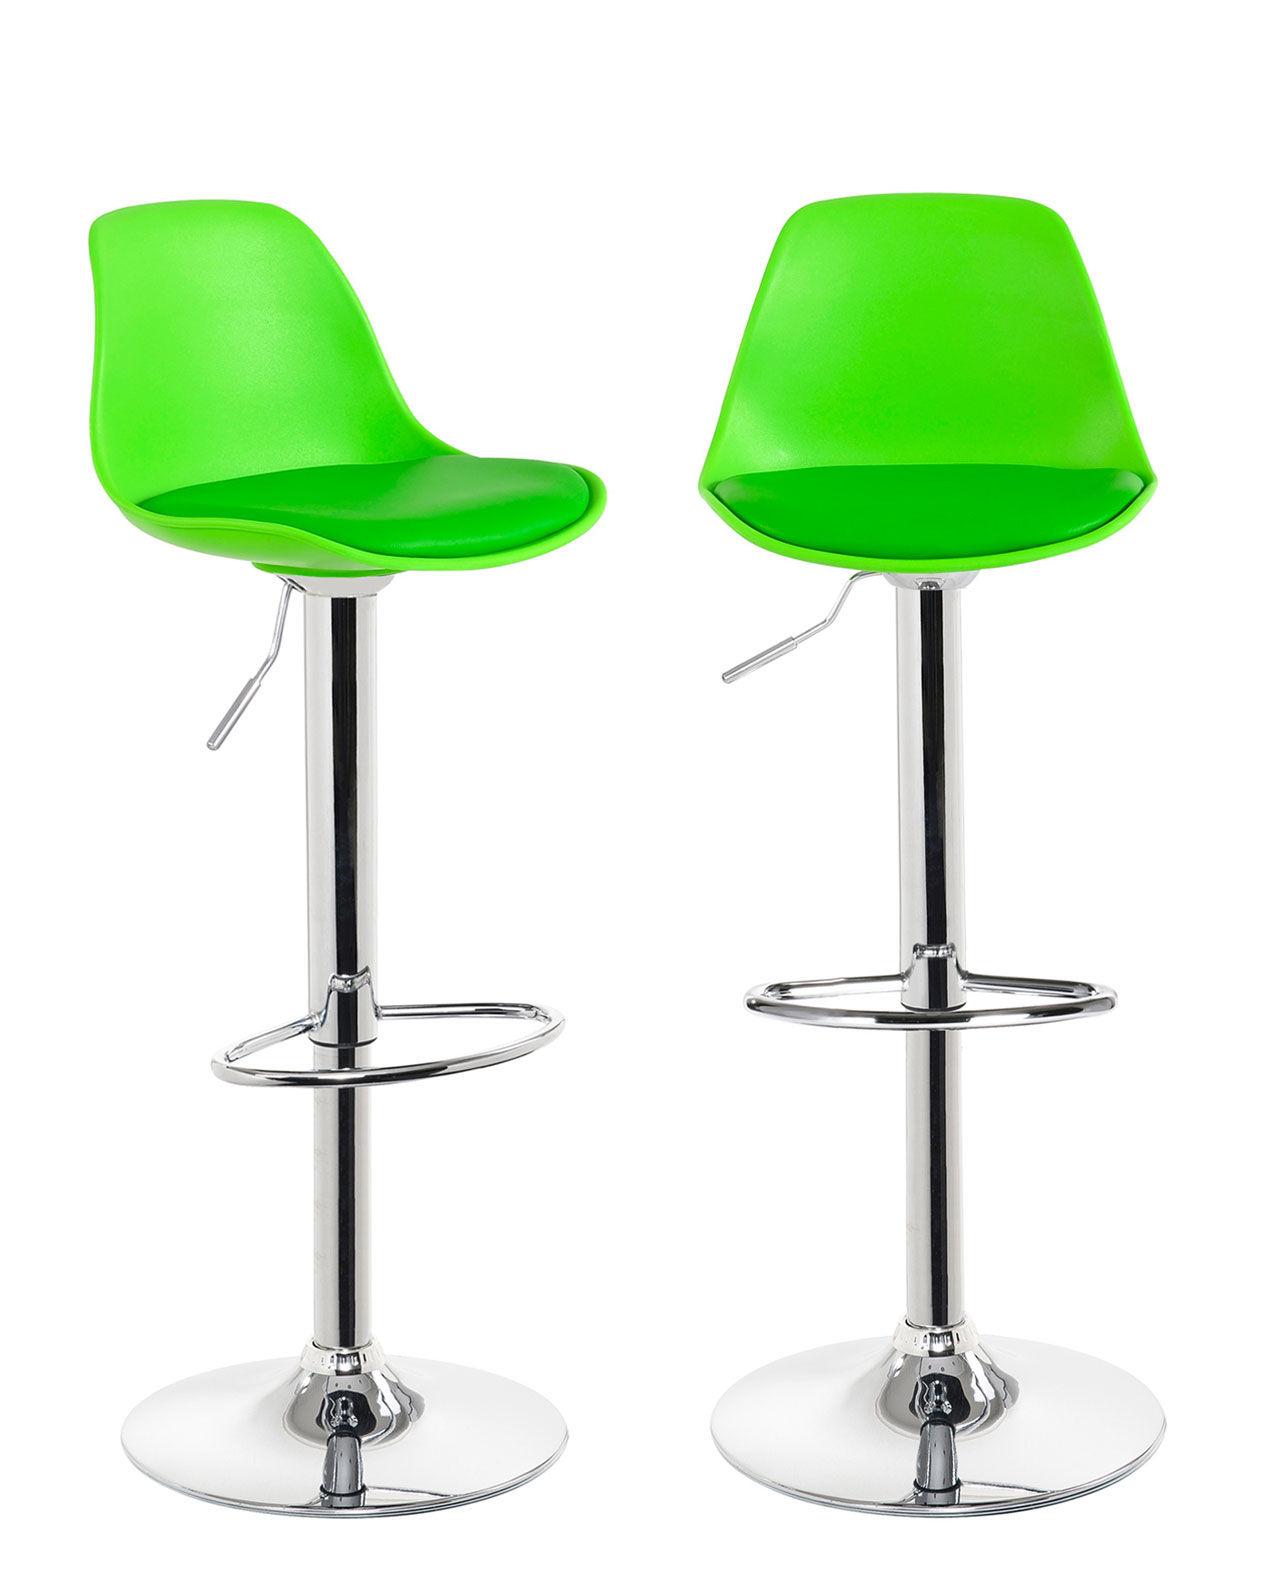 sig lot de 2 tabourets de bar design vert. Black Bedroom Furniture Sets. Home Design Ideas